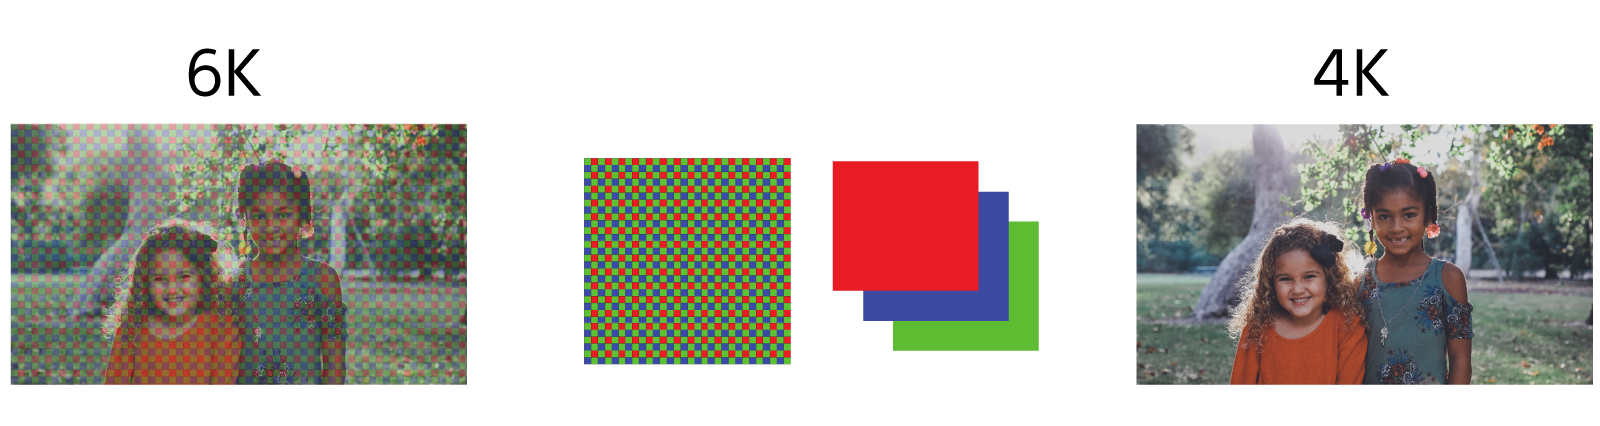 Diagrams illustrating imaging process with 6K to 4K bayer pixels.​